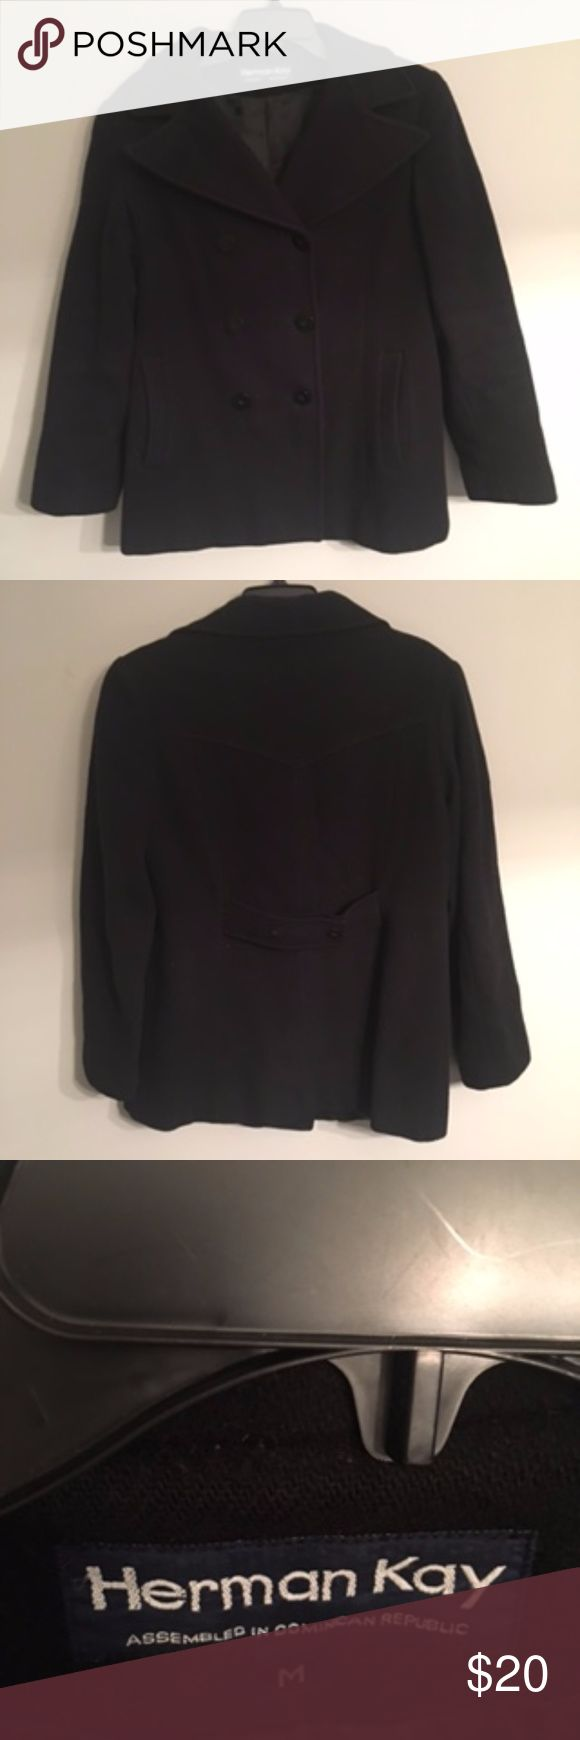 **SALE**!! 100% WOOL Black Pea Coat Women's Size M 100% WOOL Black Pea Coat Women's Size M - VERY WARM, good condition!! Fully lined. Great staple piece for your fall & winter wardrobe. Jackets & Coats Pea Coats